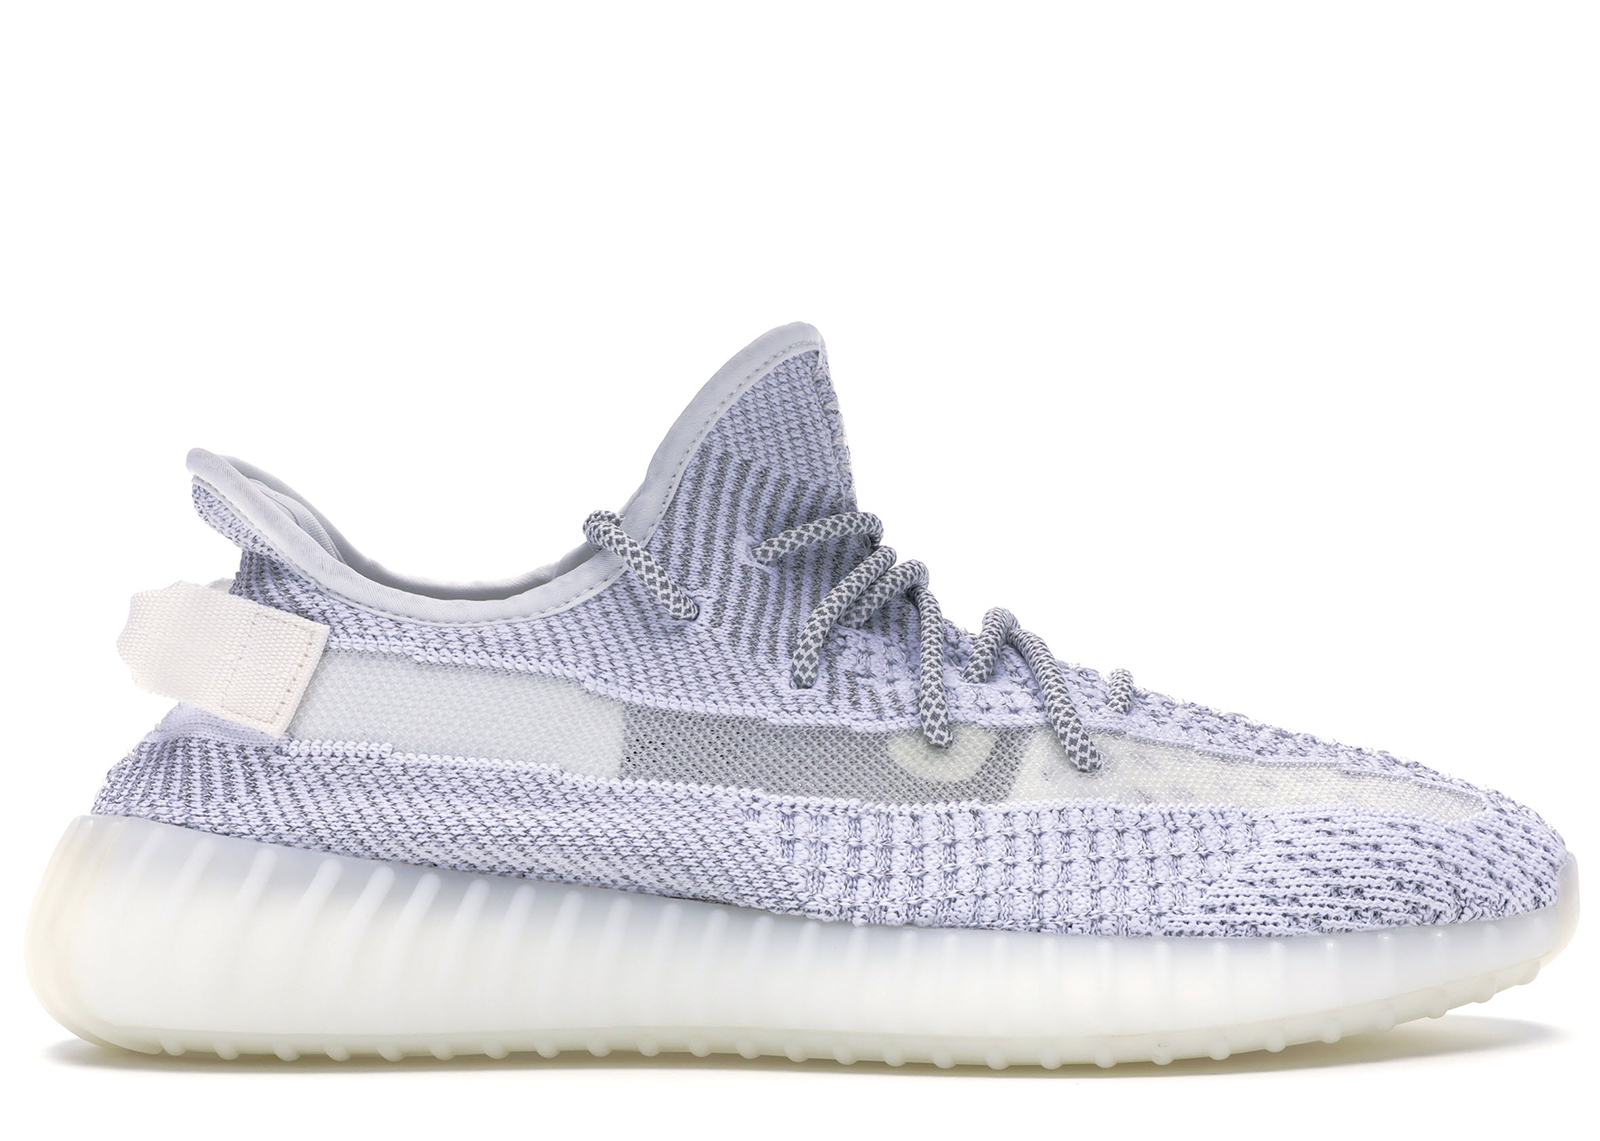 official photos 02dda ad554 HypeAnalyzer · adidas Yeezy Boost 350 V2 Static Reflective